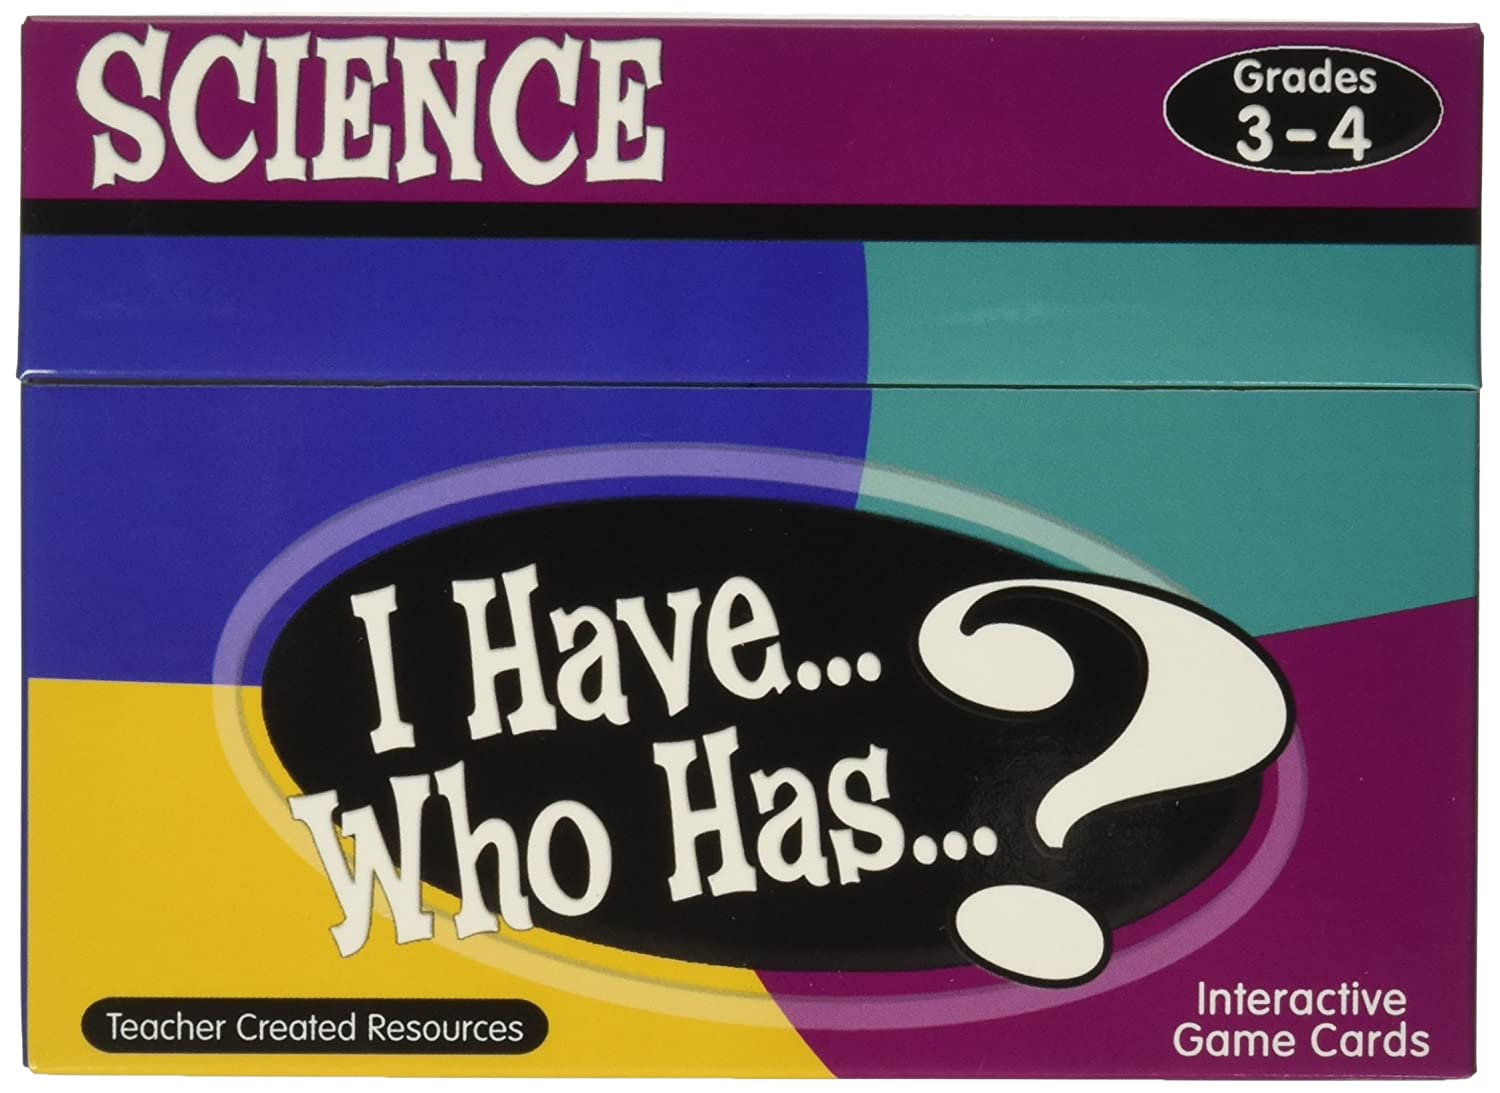 Teacher Created Resources I Have Who Has Science Card Teacher Created Resources OS 7857